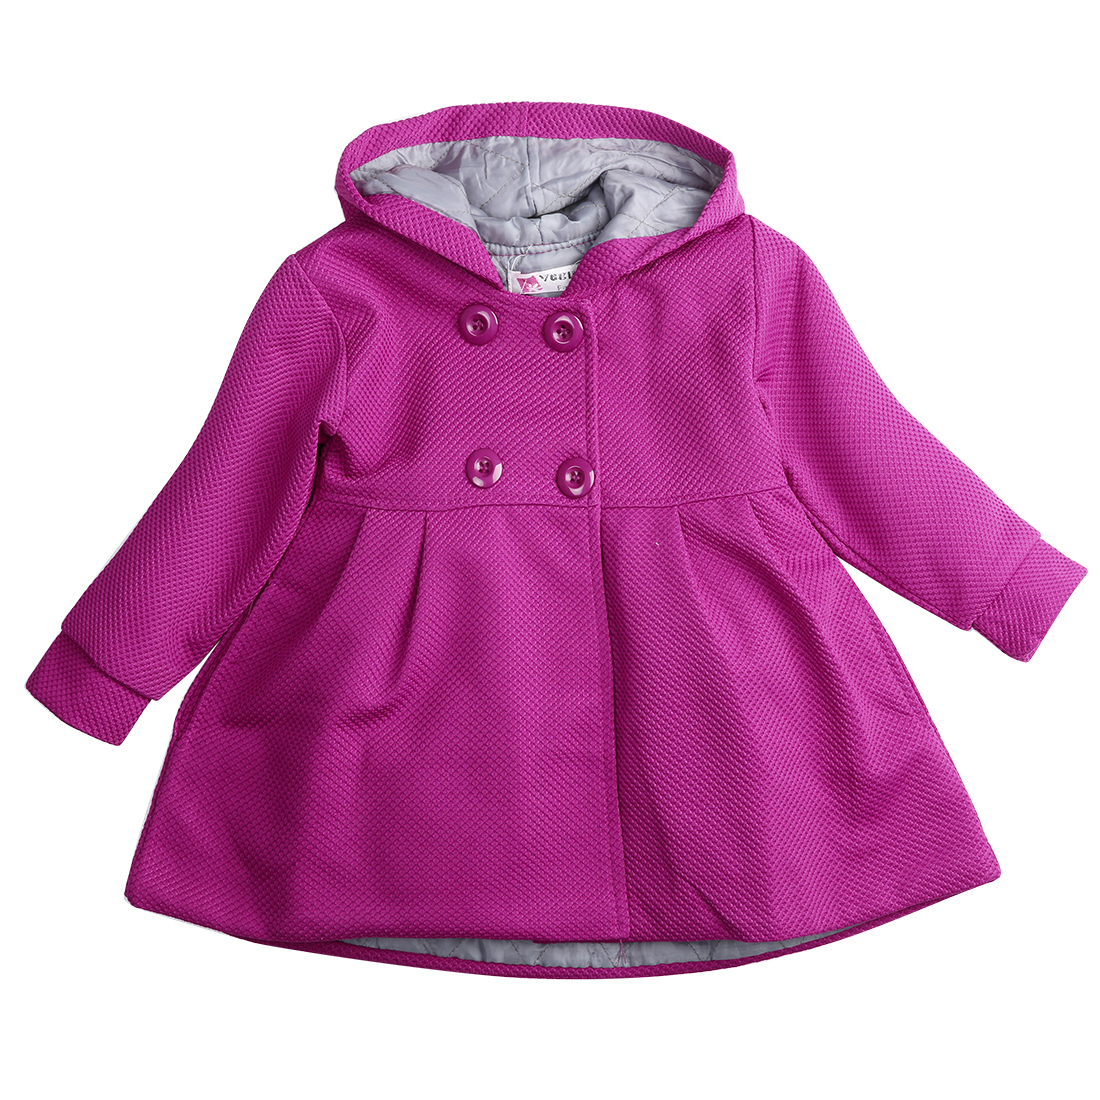 Shop baby boy outerwear, coats & jackets at russia-youtube.tk Visit Carter's and buy quality kids, toddlers, and baby clothes from a trusted name in children's apparel. Shop baby boy outerwear, coats & jackets at russia-youtube.tk Visit Carter's and buy quality kids, toddlers, and baby clothes from a trusted name in children's apparel. I bought this.